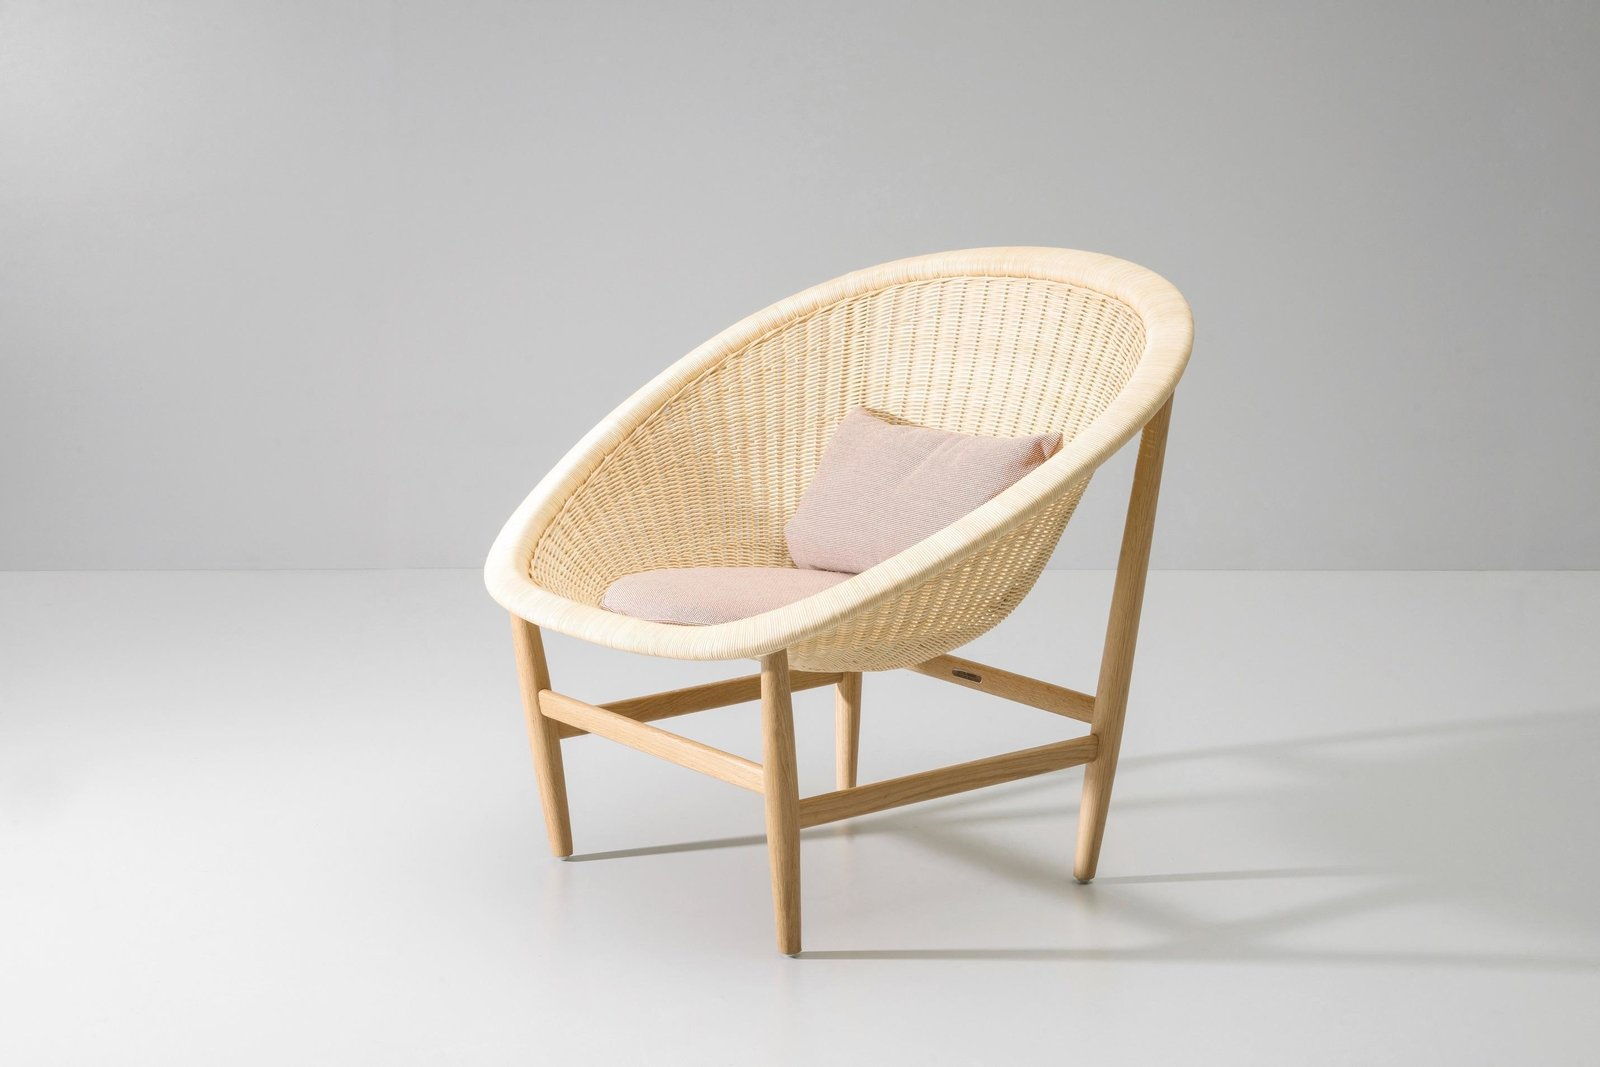 moco submissions basket chair loco